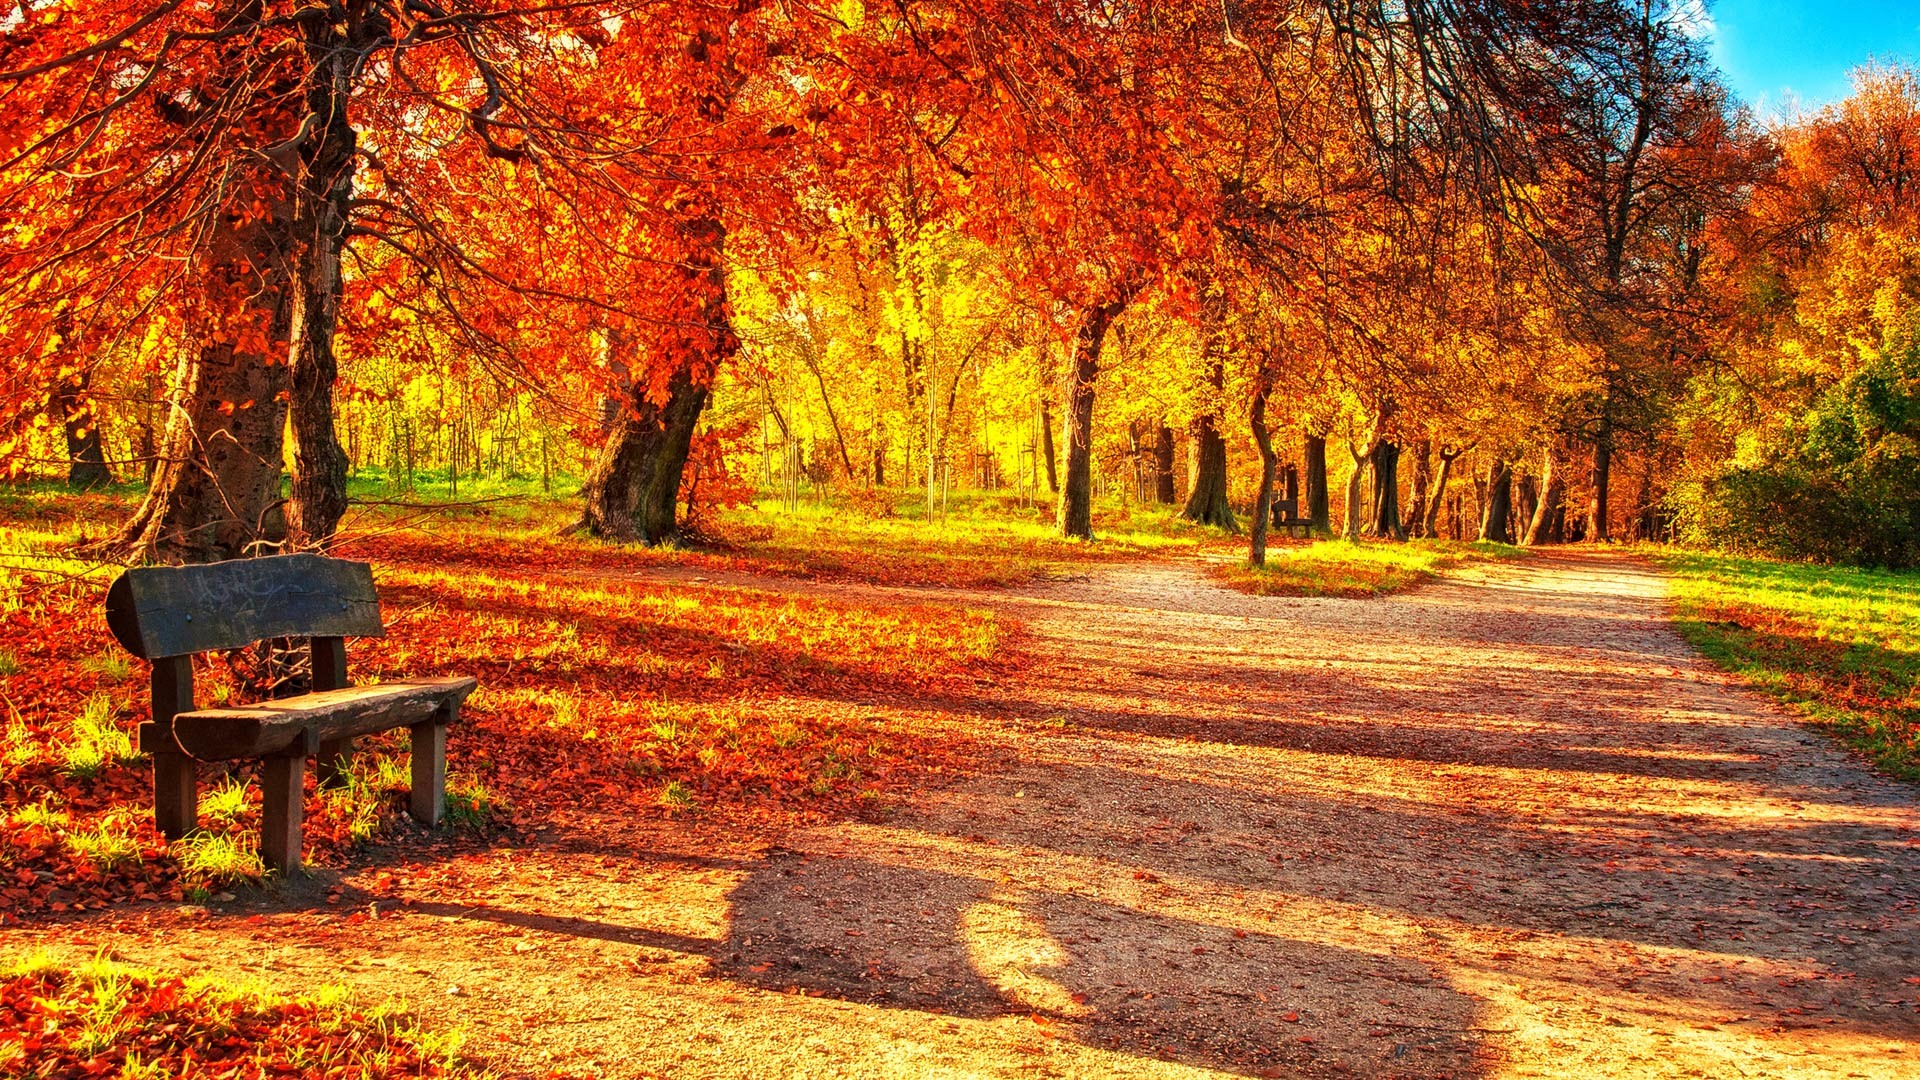 AUTUMN LEAVES WALLPAPERS - HD Wallpapers and Pictures